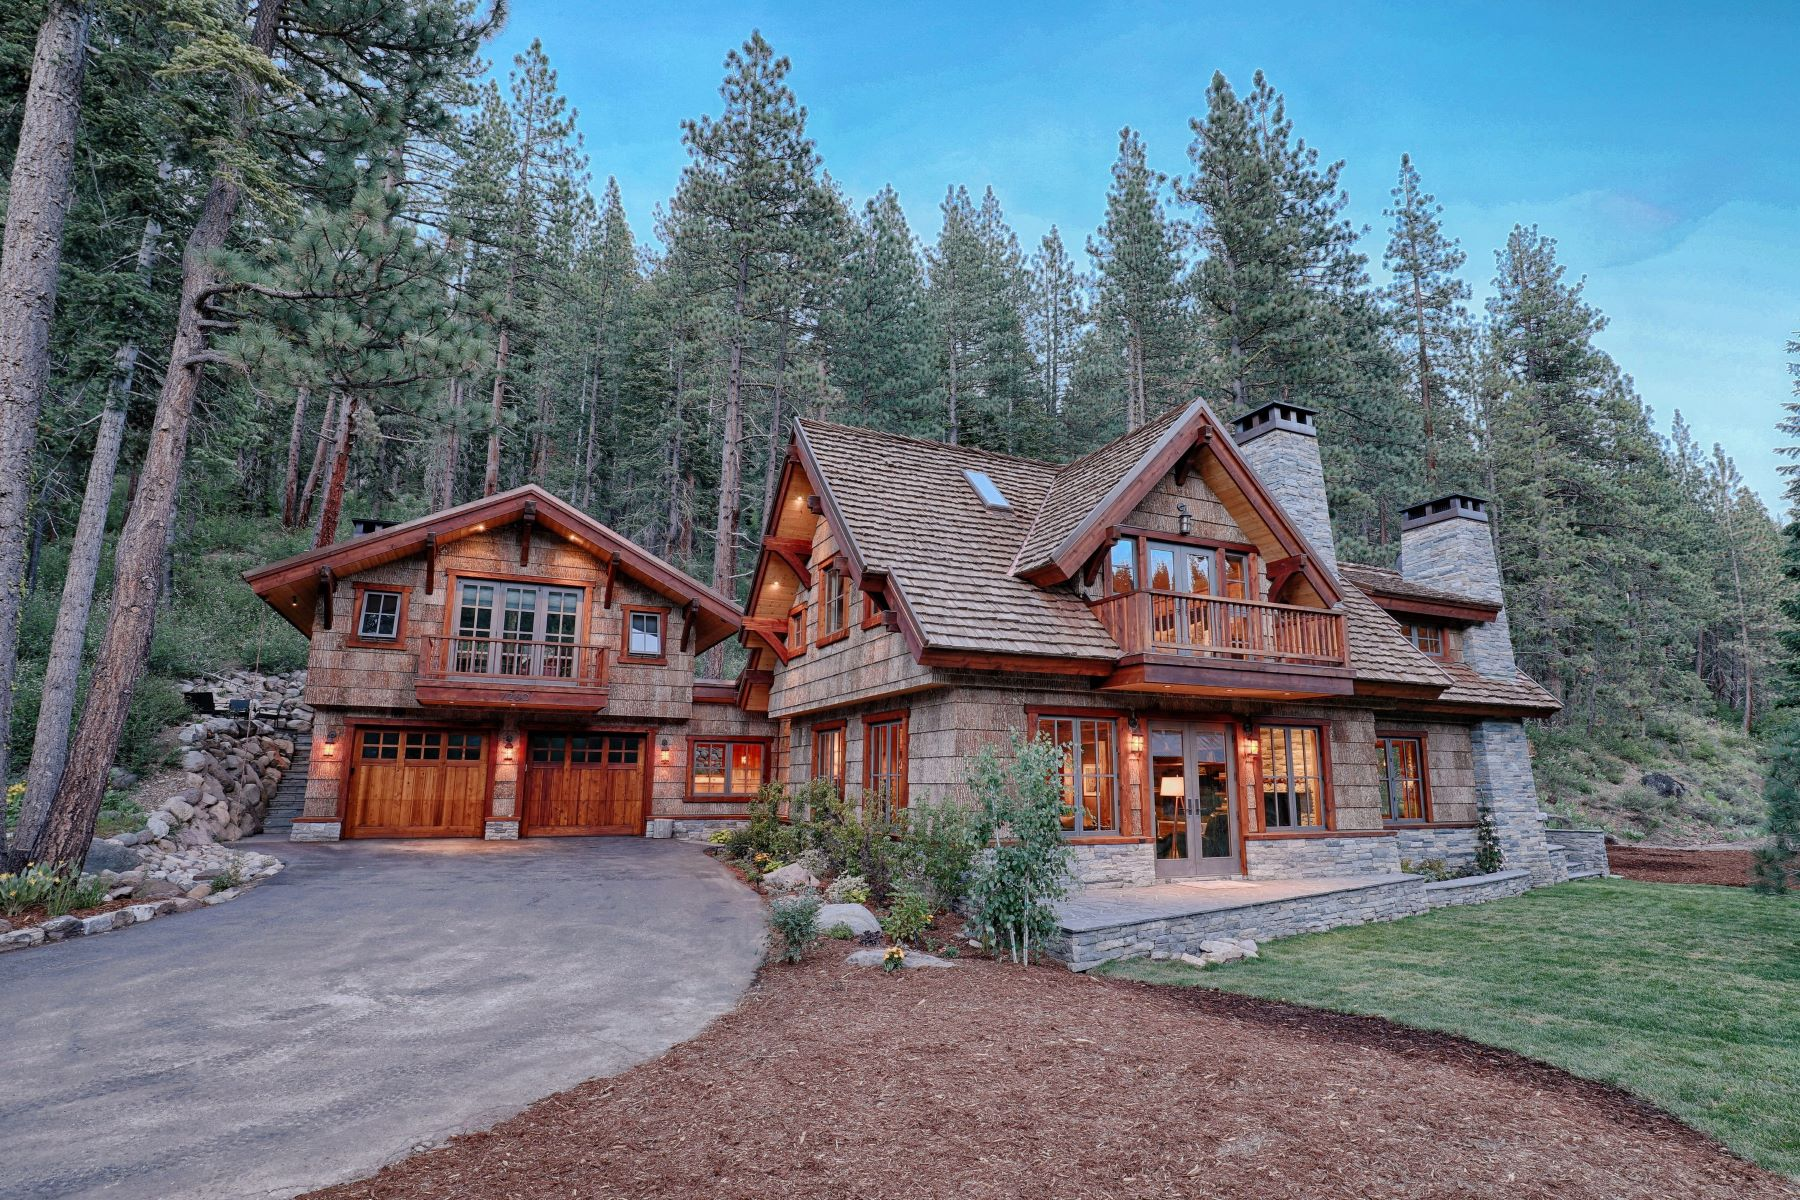 Single Family Home for Active at Custom Built Truckee River Estate 7260 River Road Tahoe City, California 96145 United States